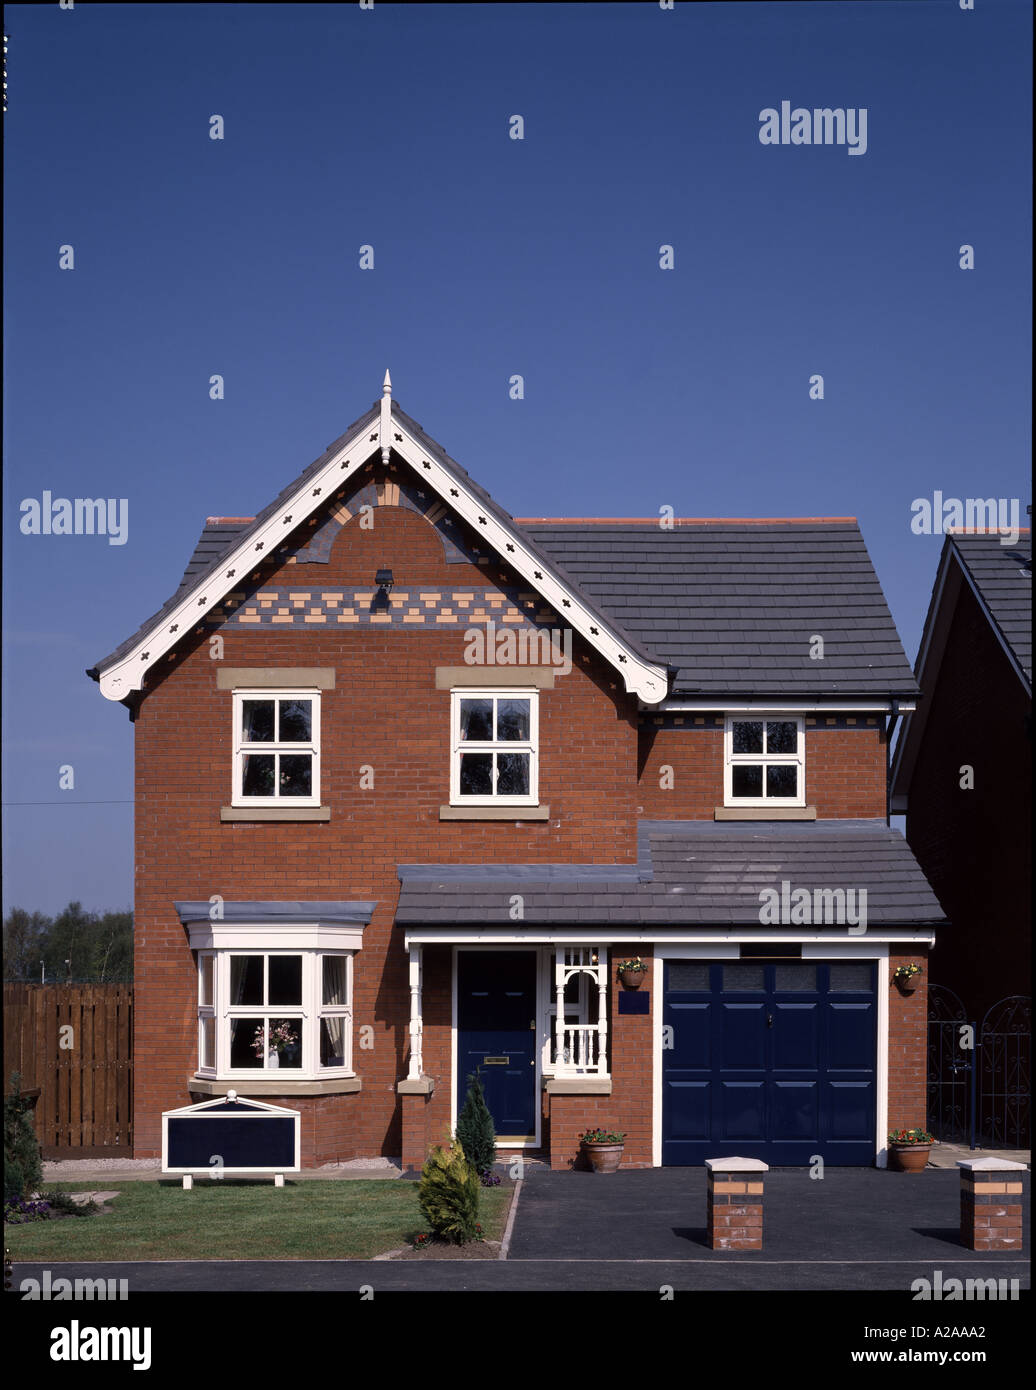 Home Front Elevation Uk : Front elevation of ordinary red brick pitched roof